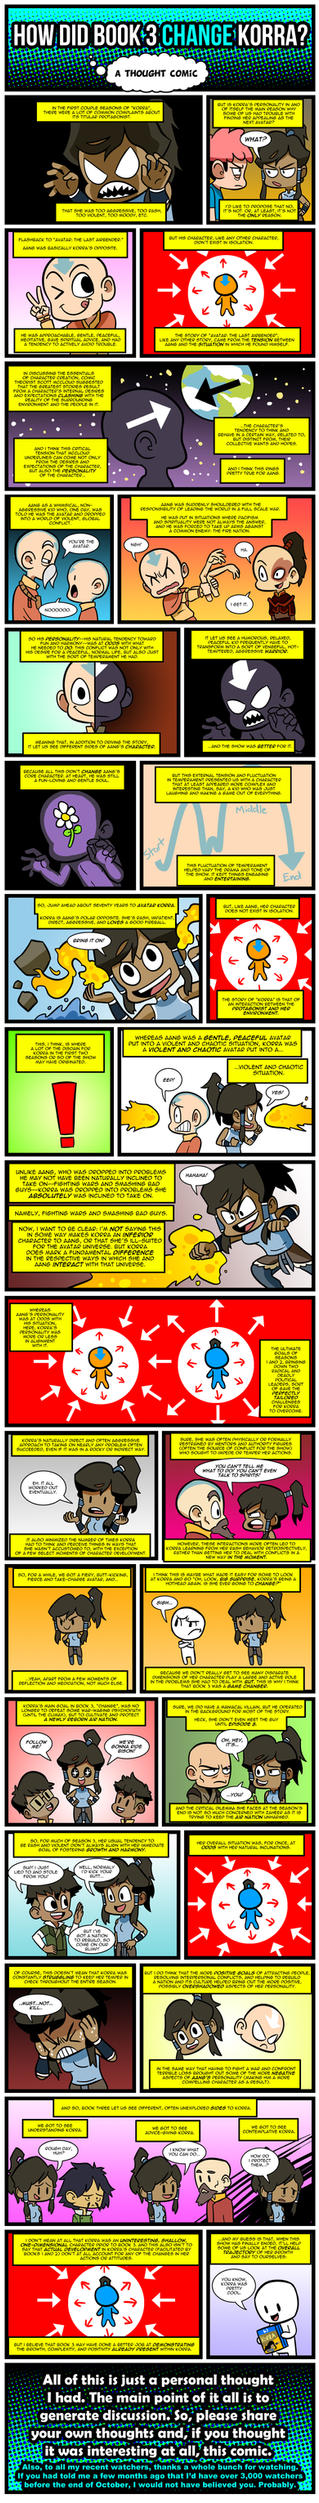 How Did Book 3 CHANGE Korra? - A Thought Comic by Neodusk